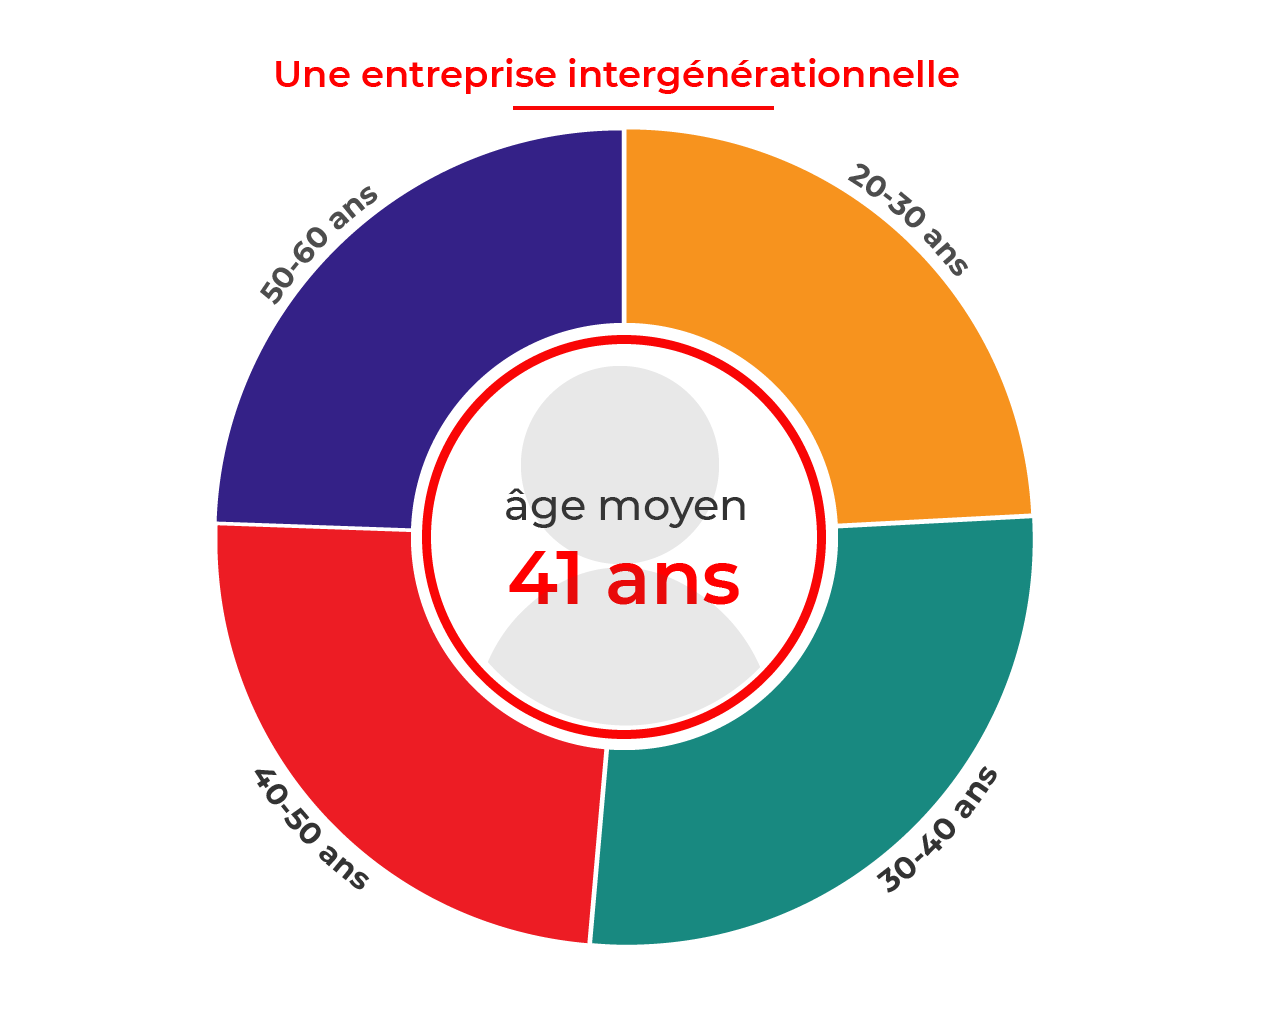 age moyen collaborateurs thiot ingenierie